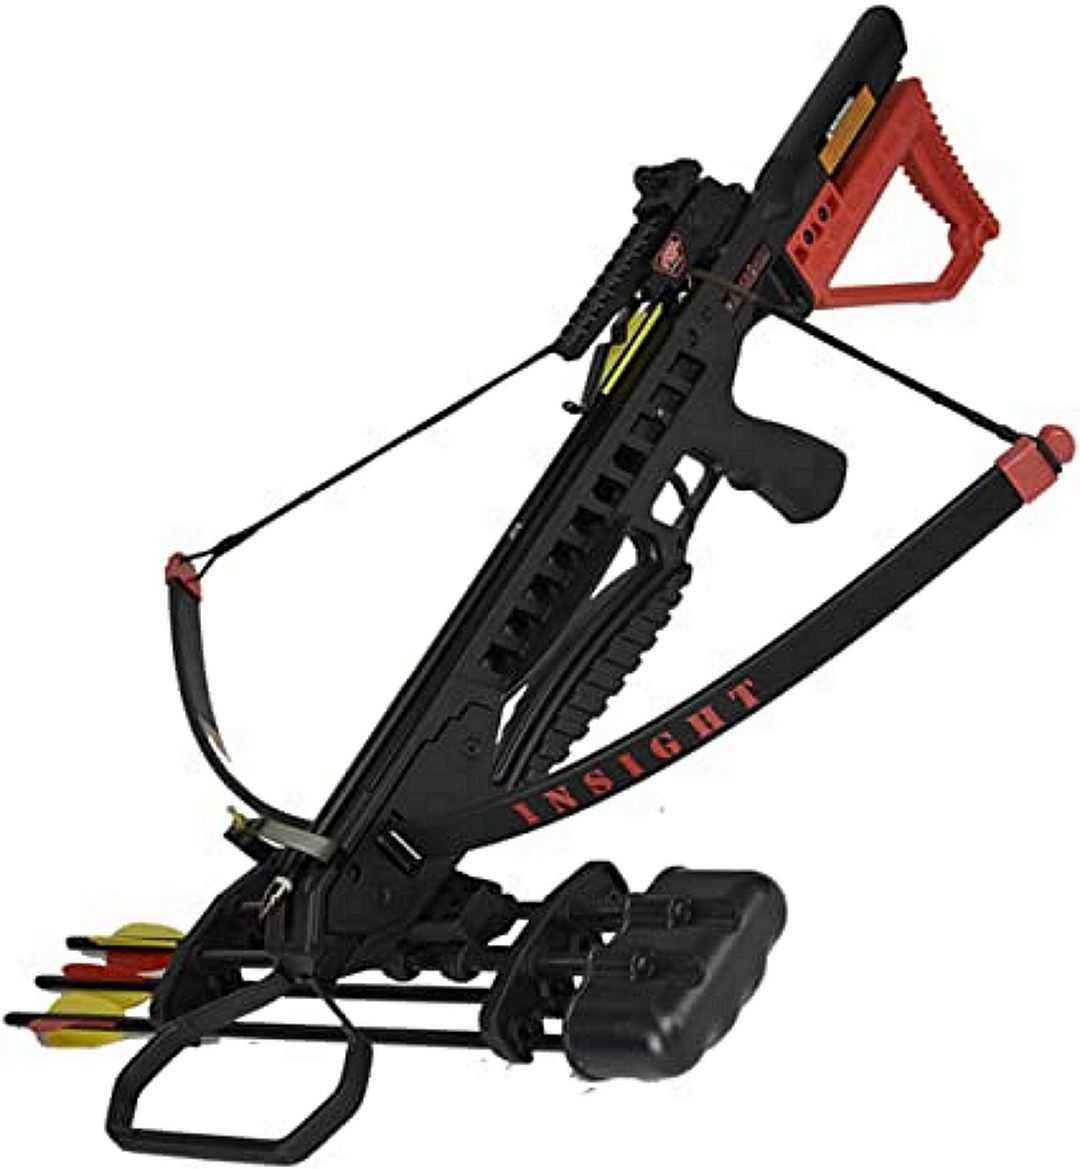 PSE Insight Trainer Crossbow